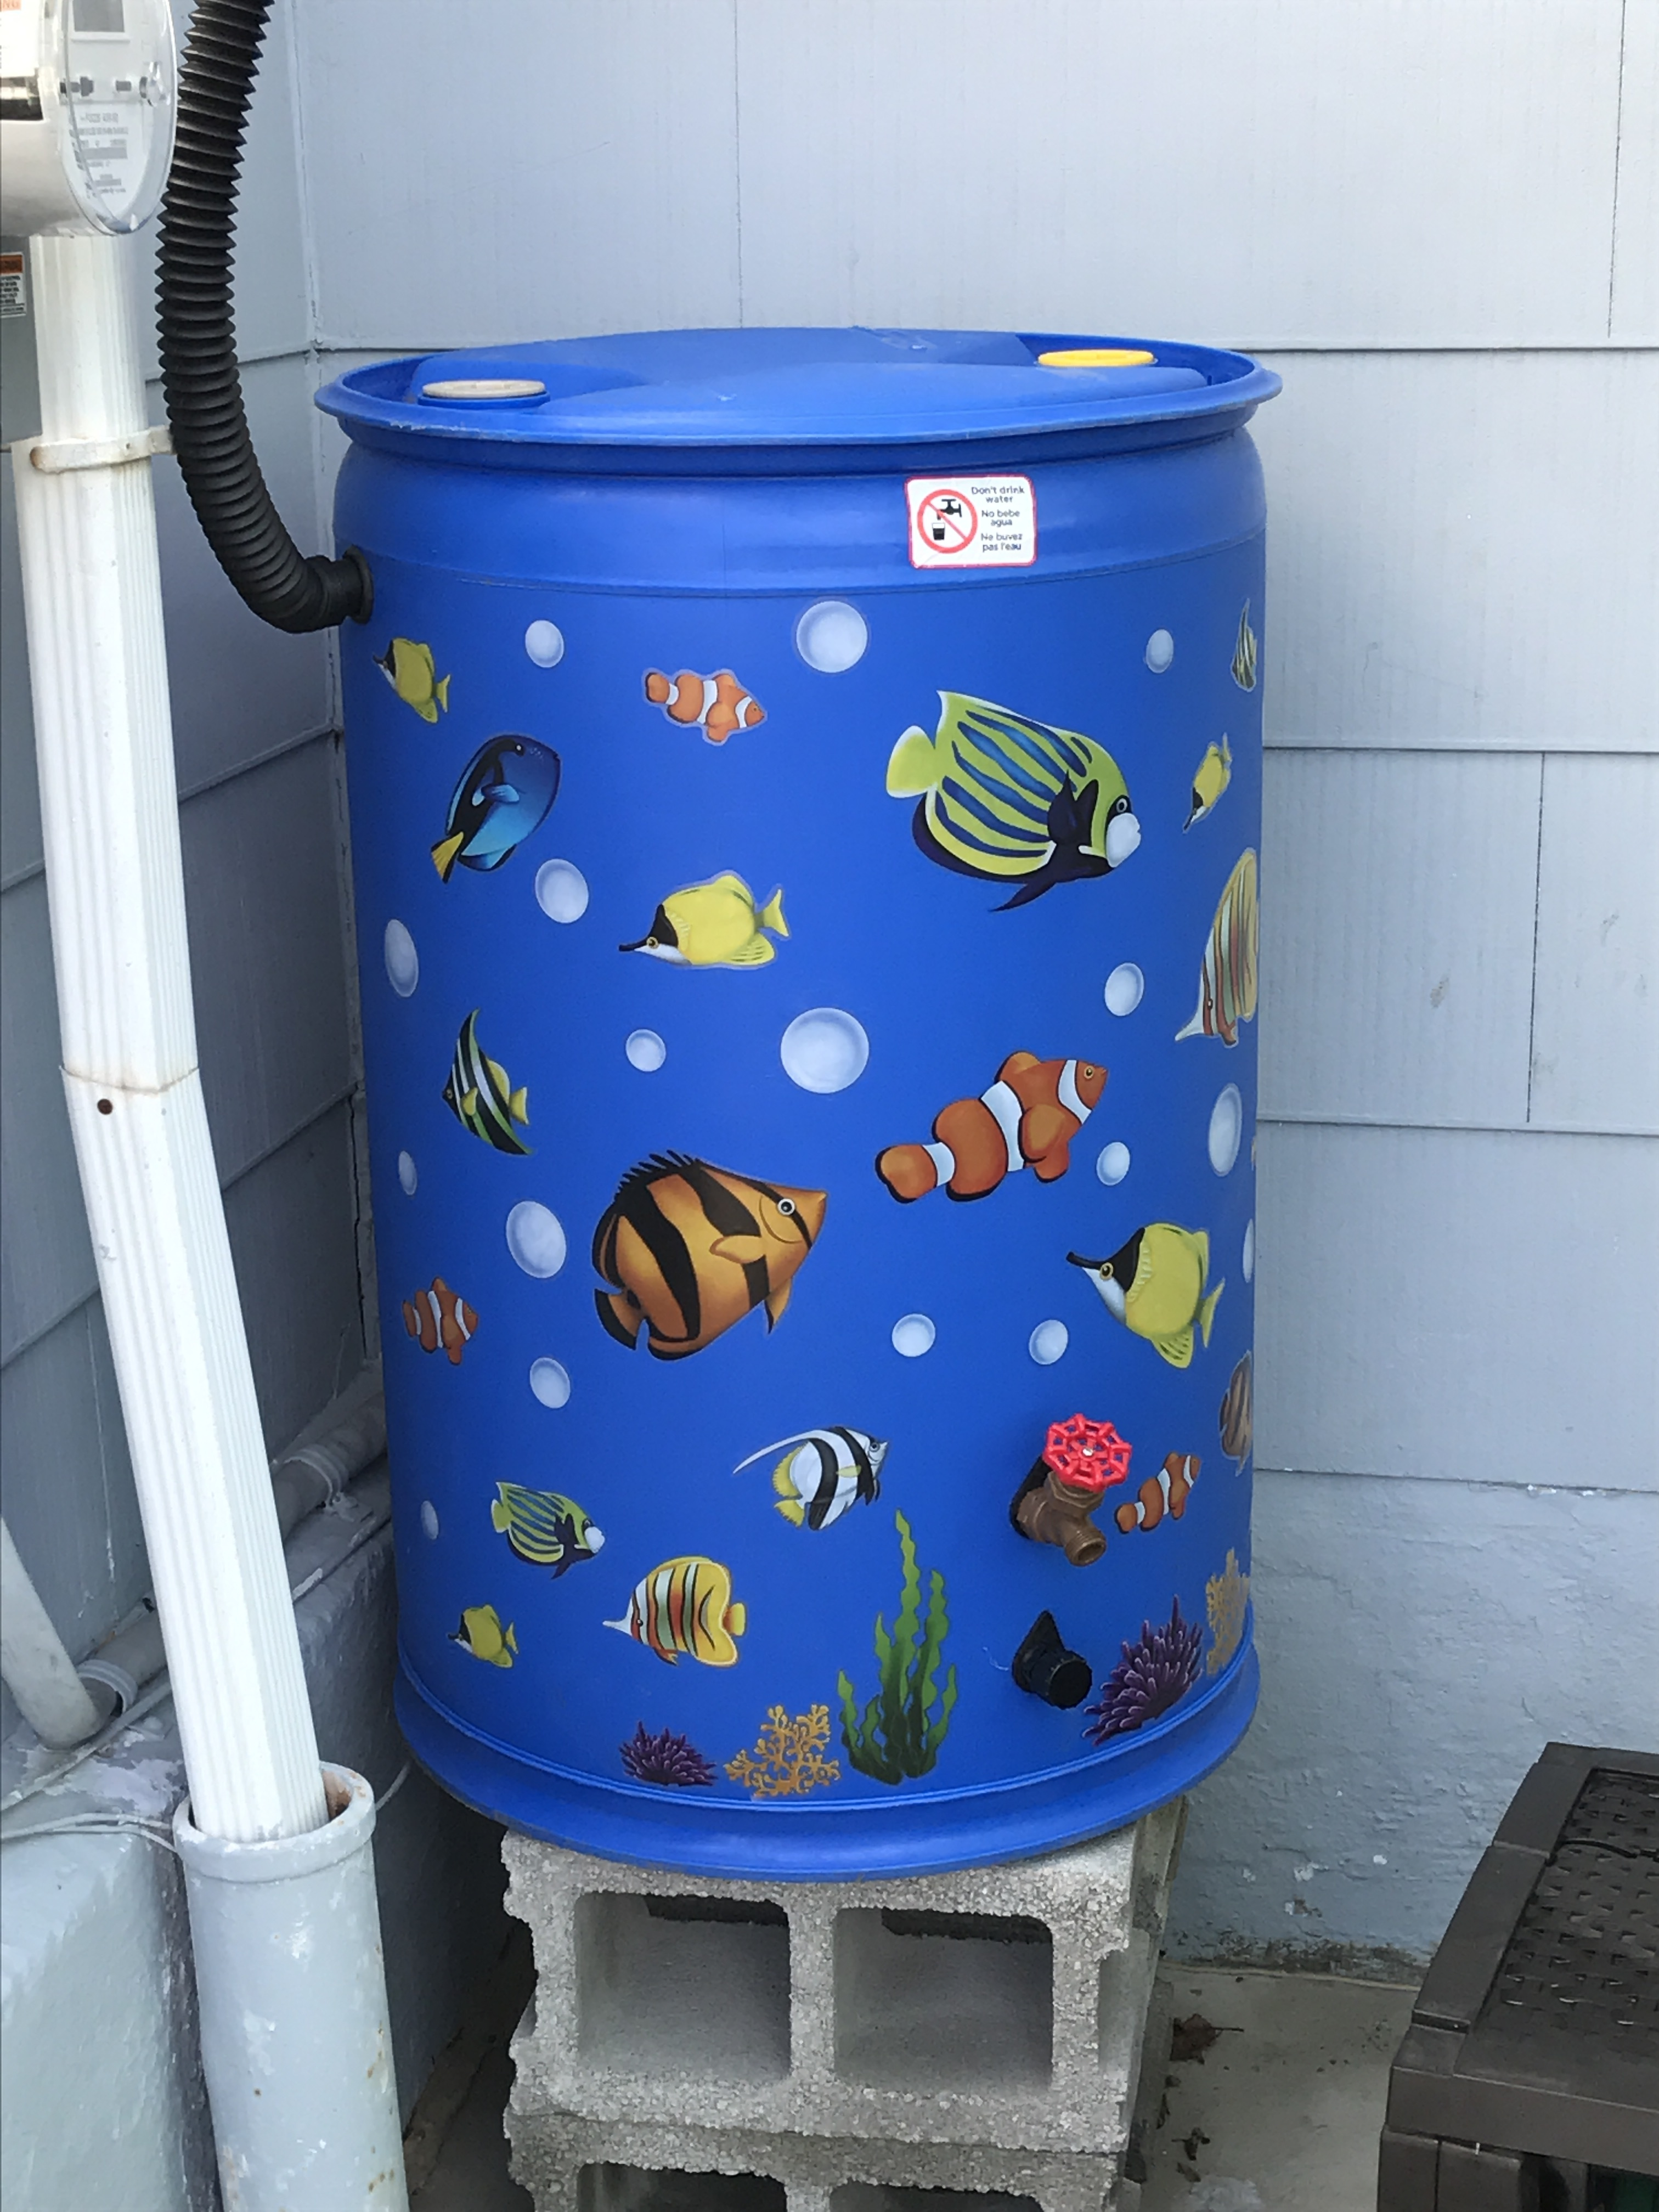 Get creative and decorate your rain barrel!